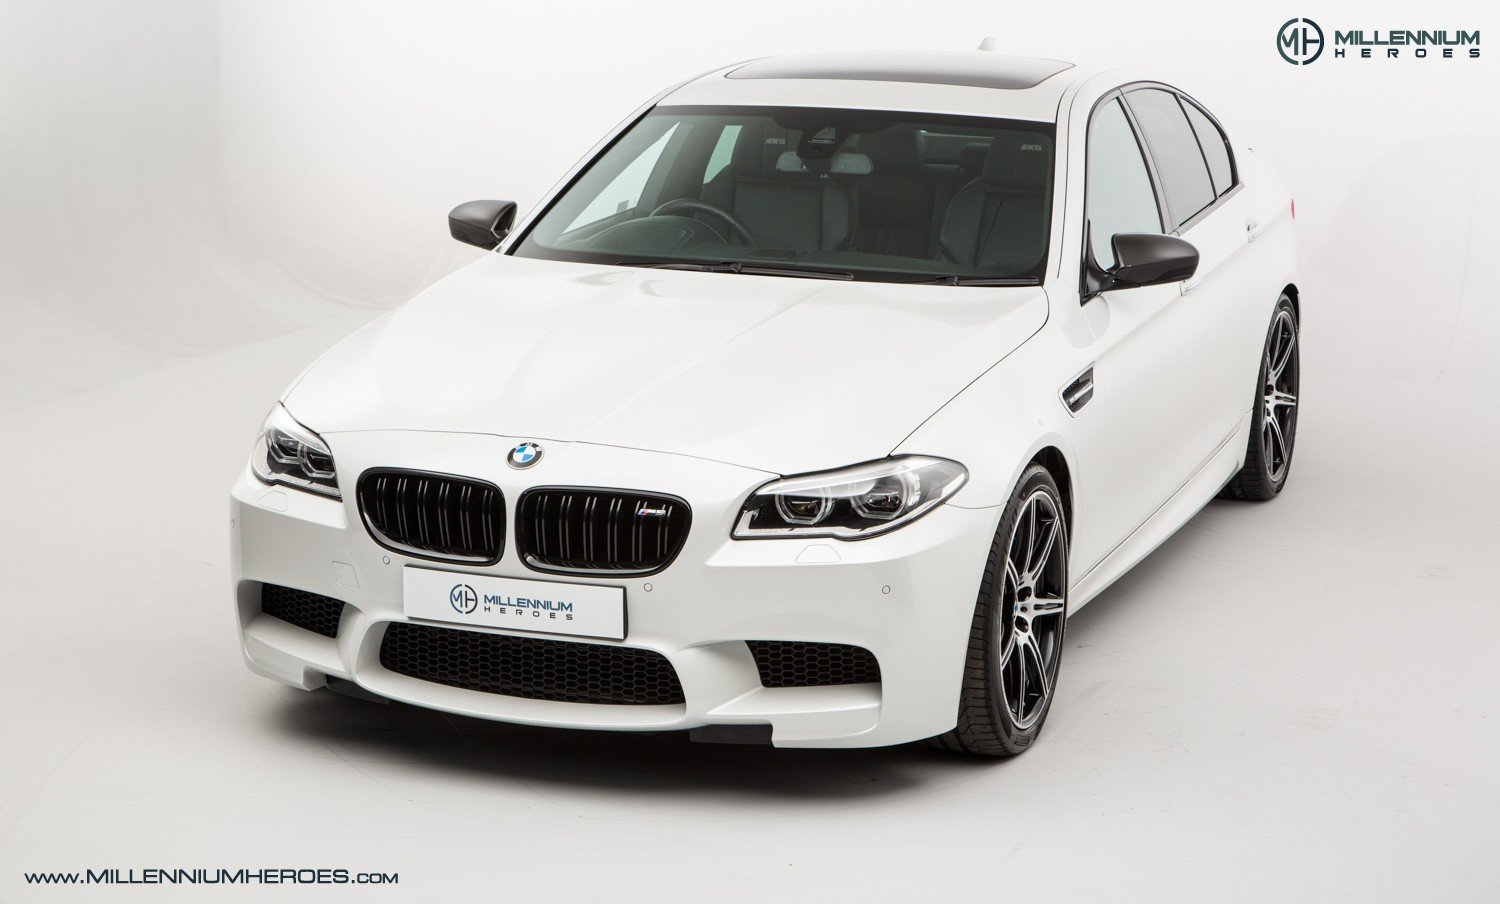 2016 BMW M5 COMPETITION EDITION  For Sale (picture 2 of 22)